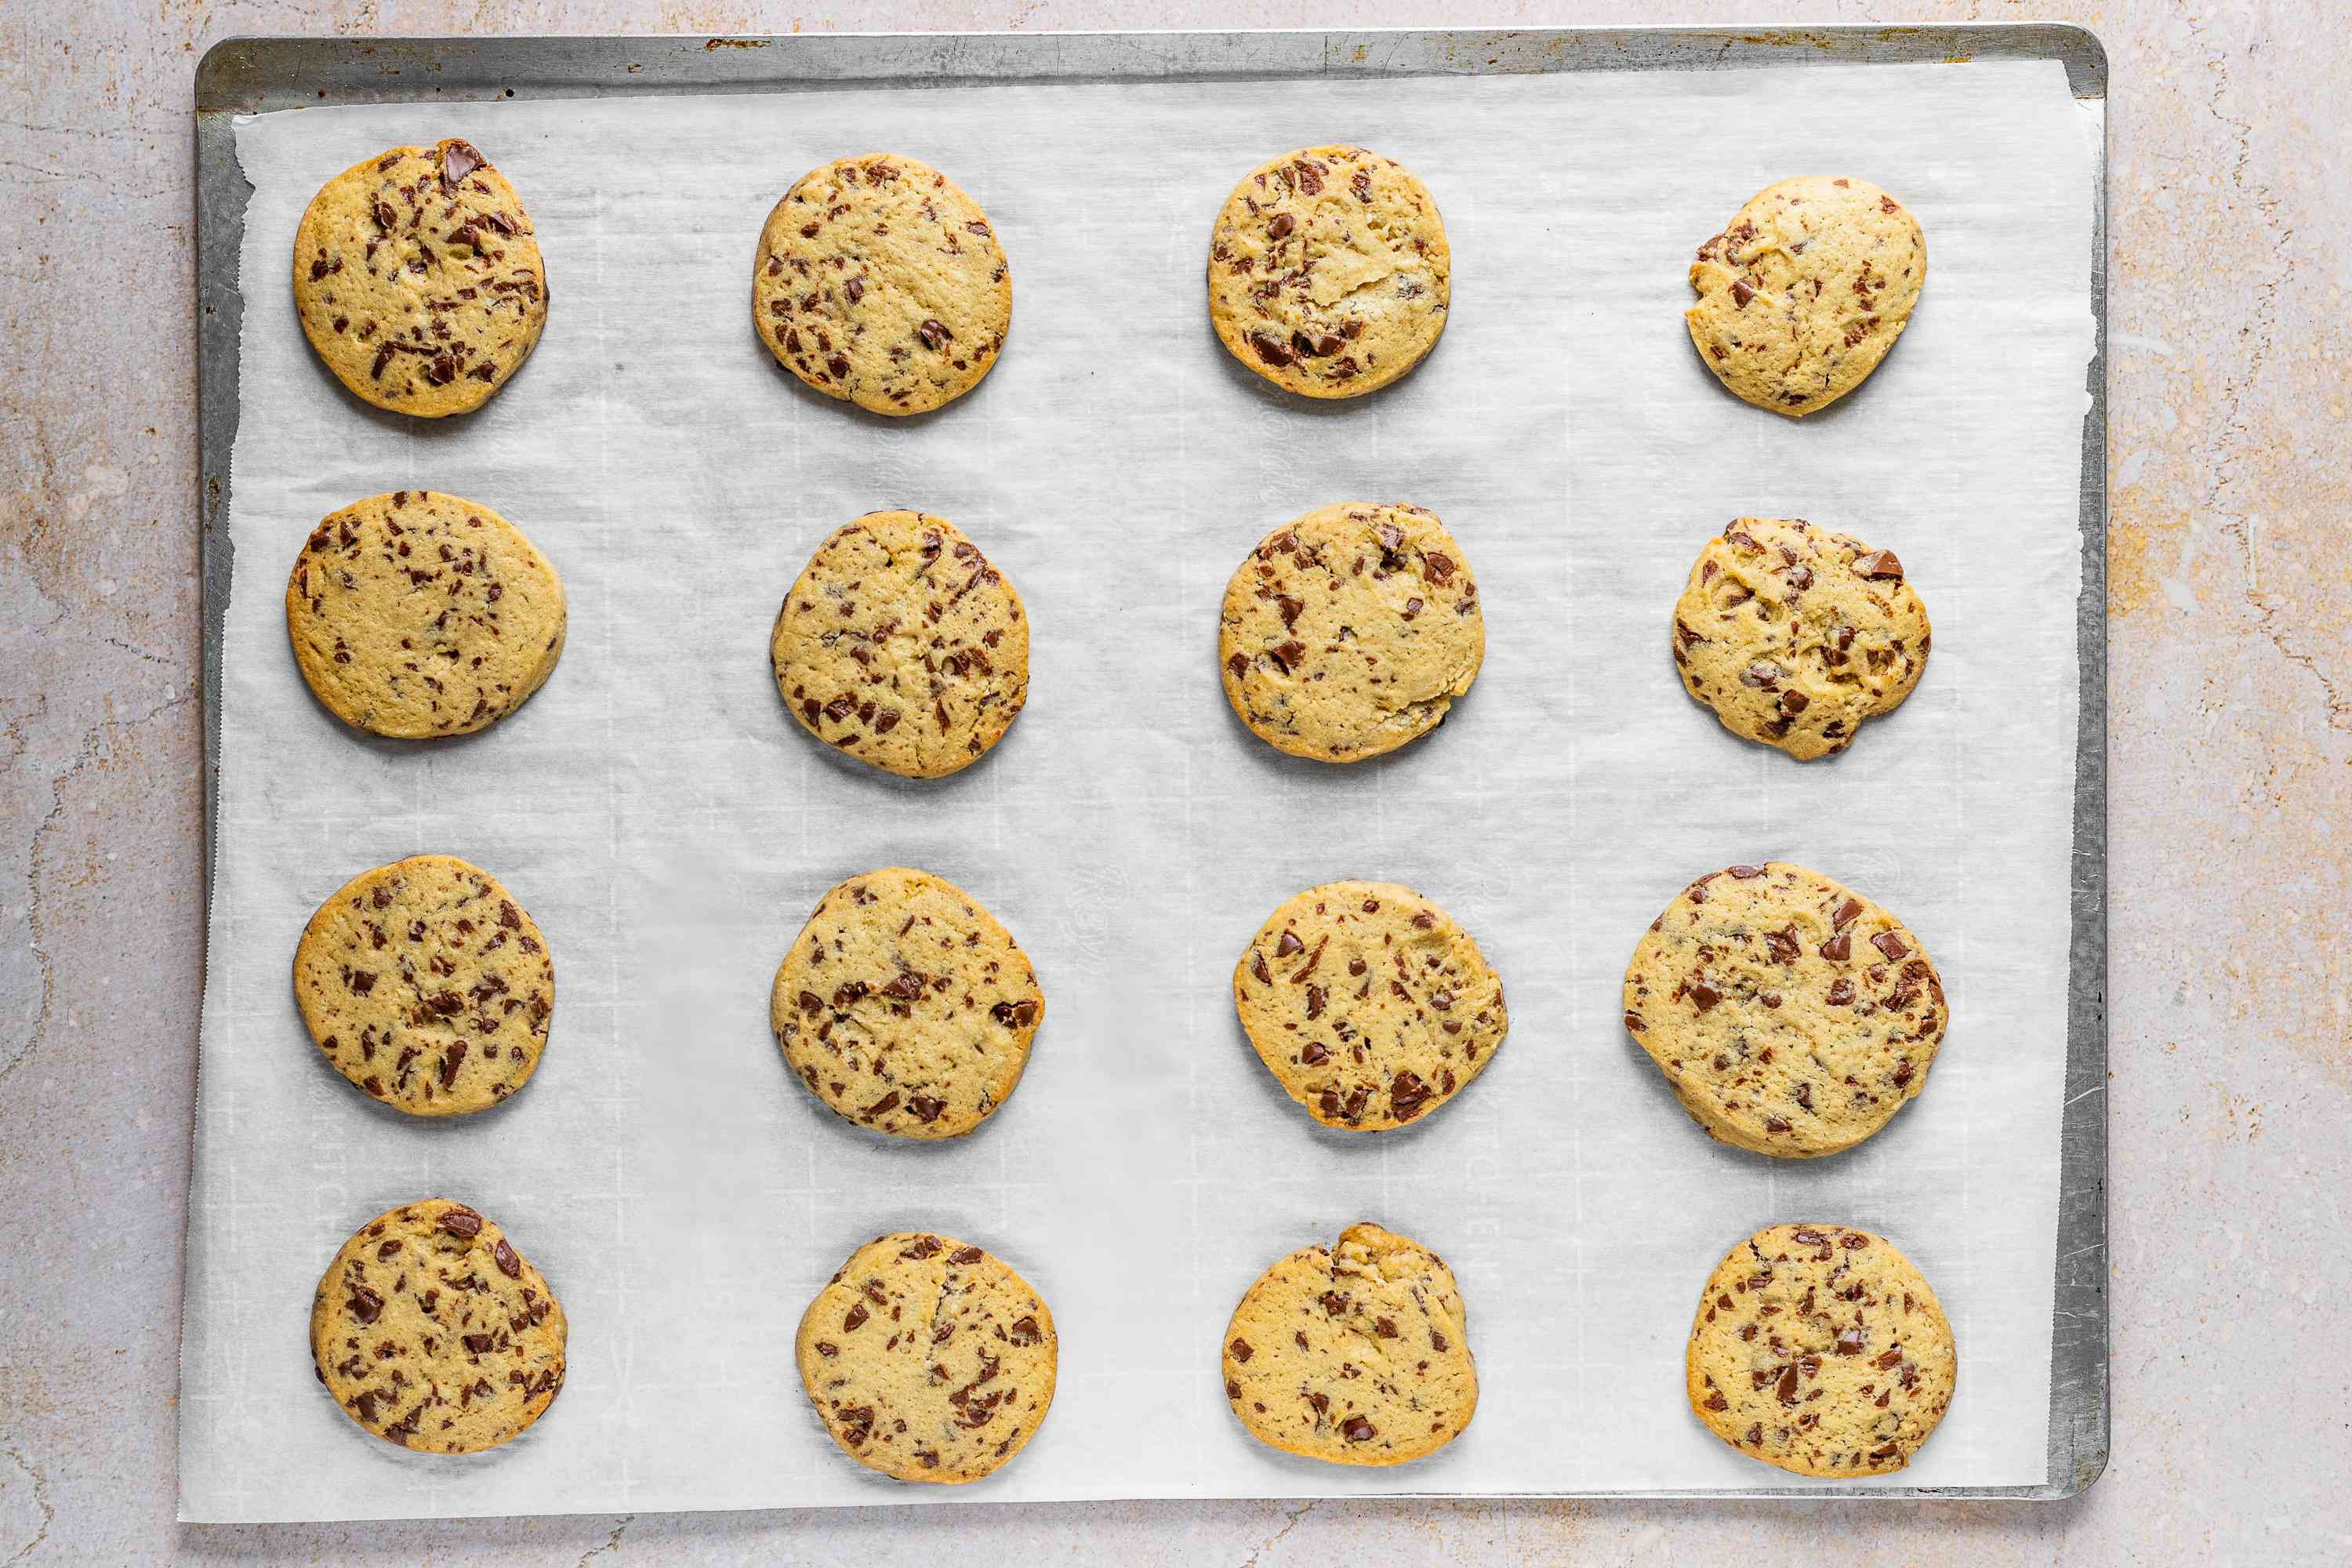 Chocolate Chip Icebox Cookies on a baking sheet